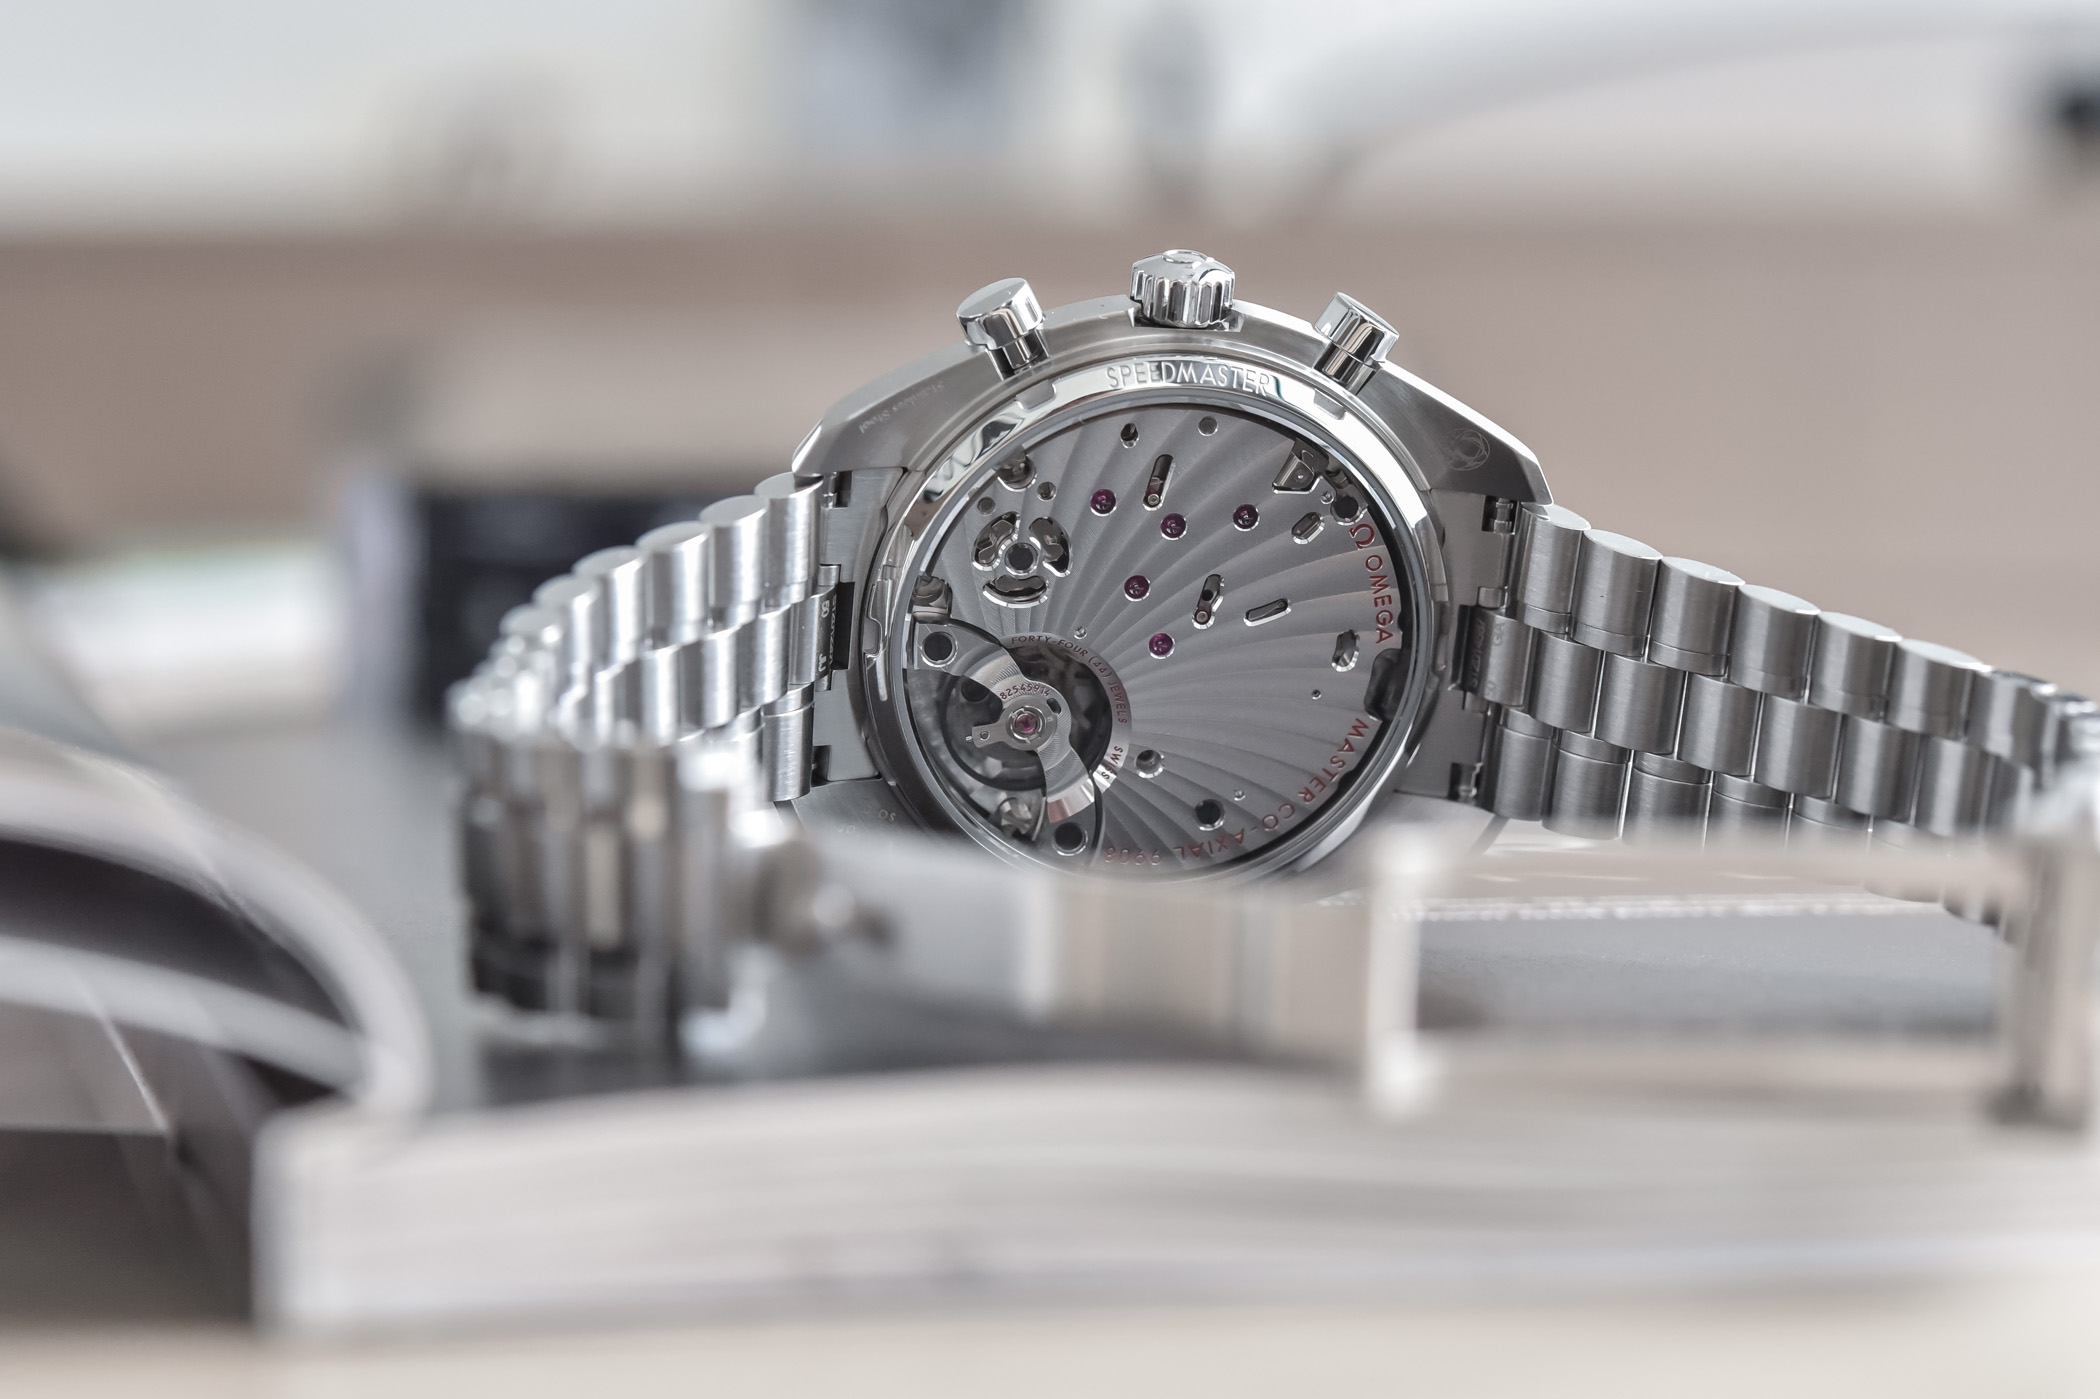 2021 Omega Speedmaster Chronoscope Collection review 329.30.43.51.03.001 10